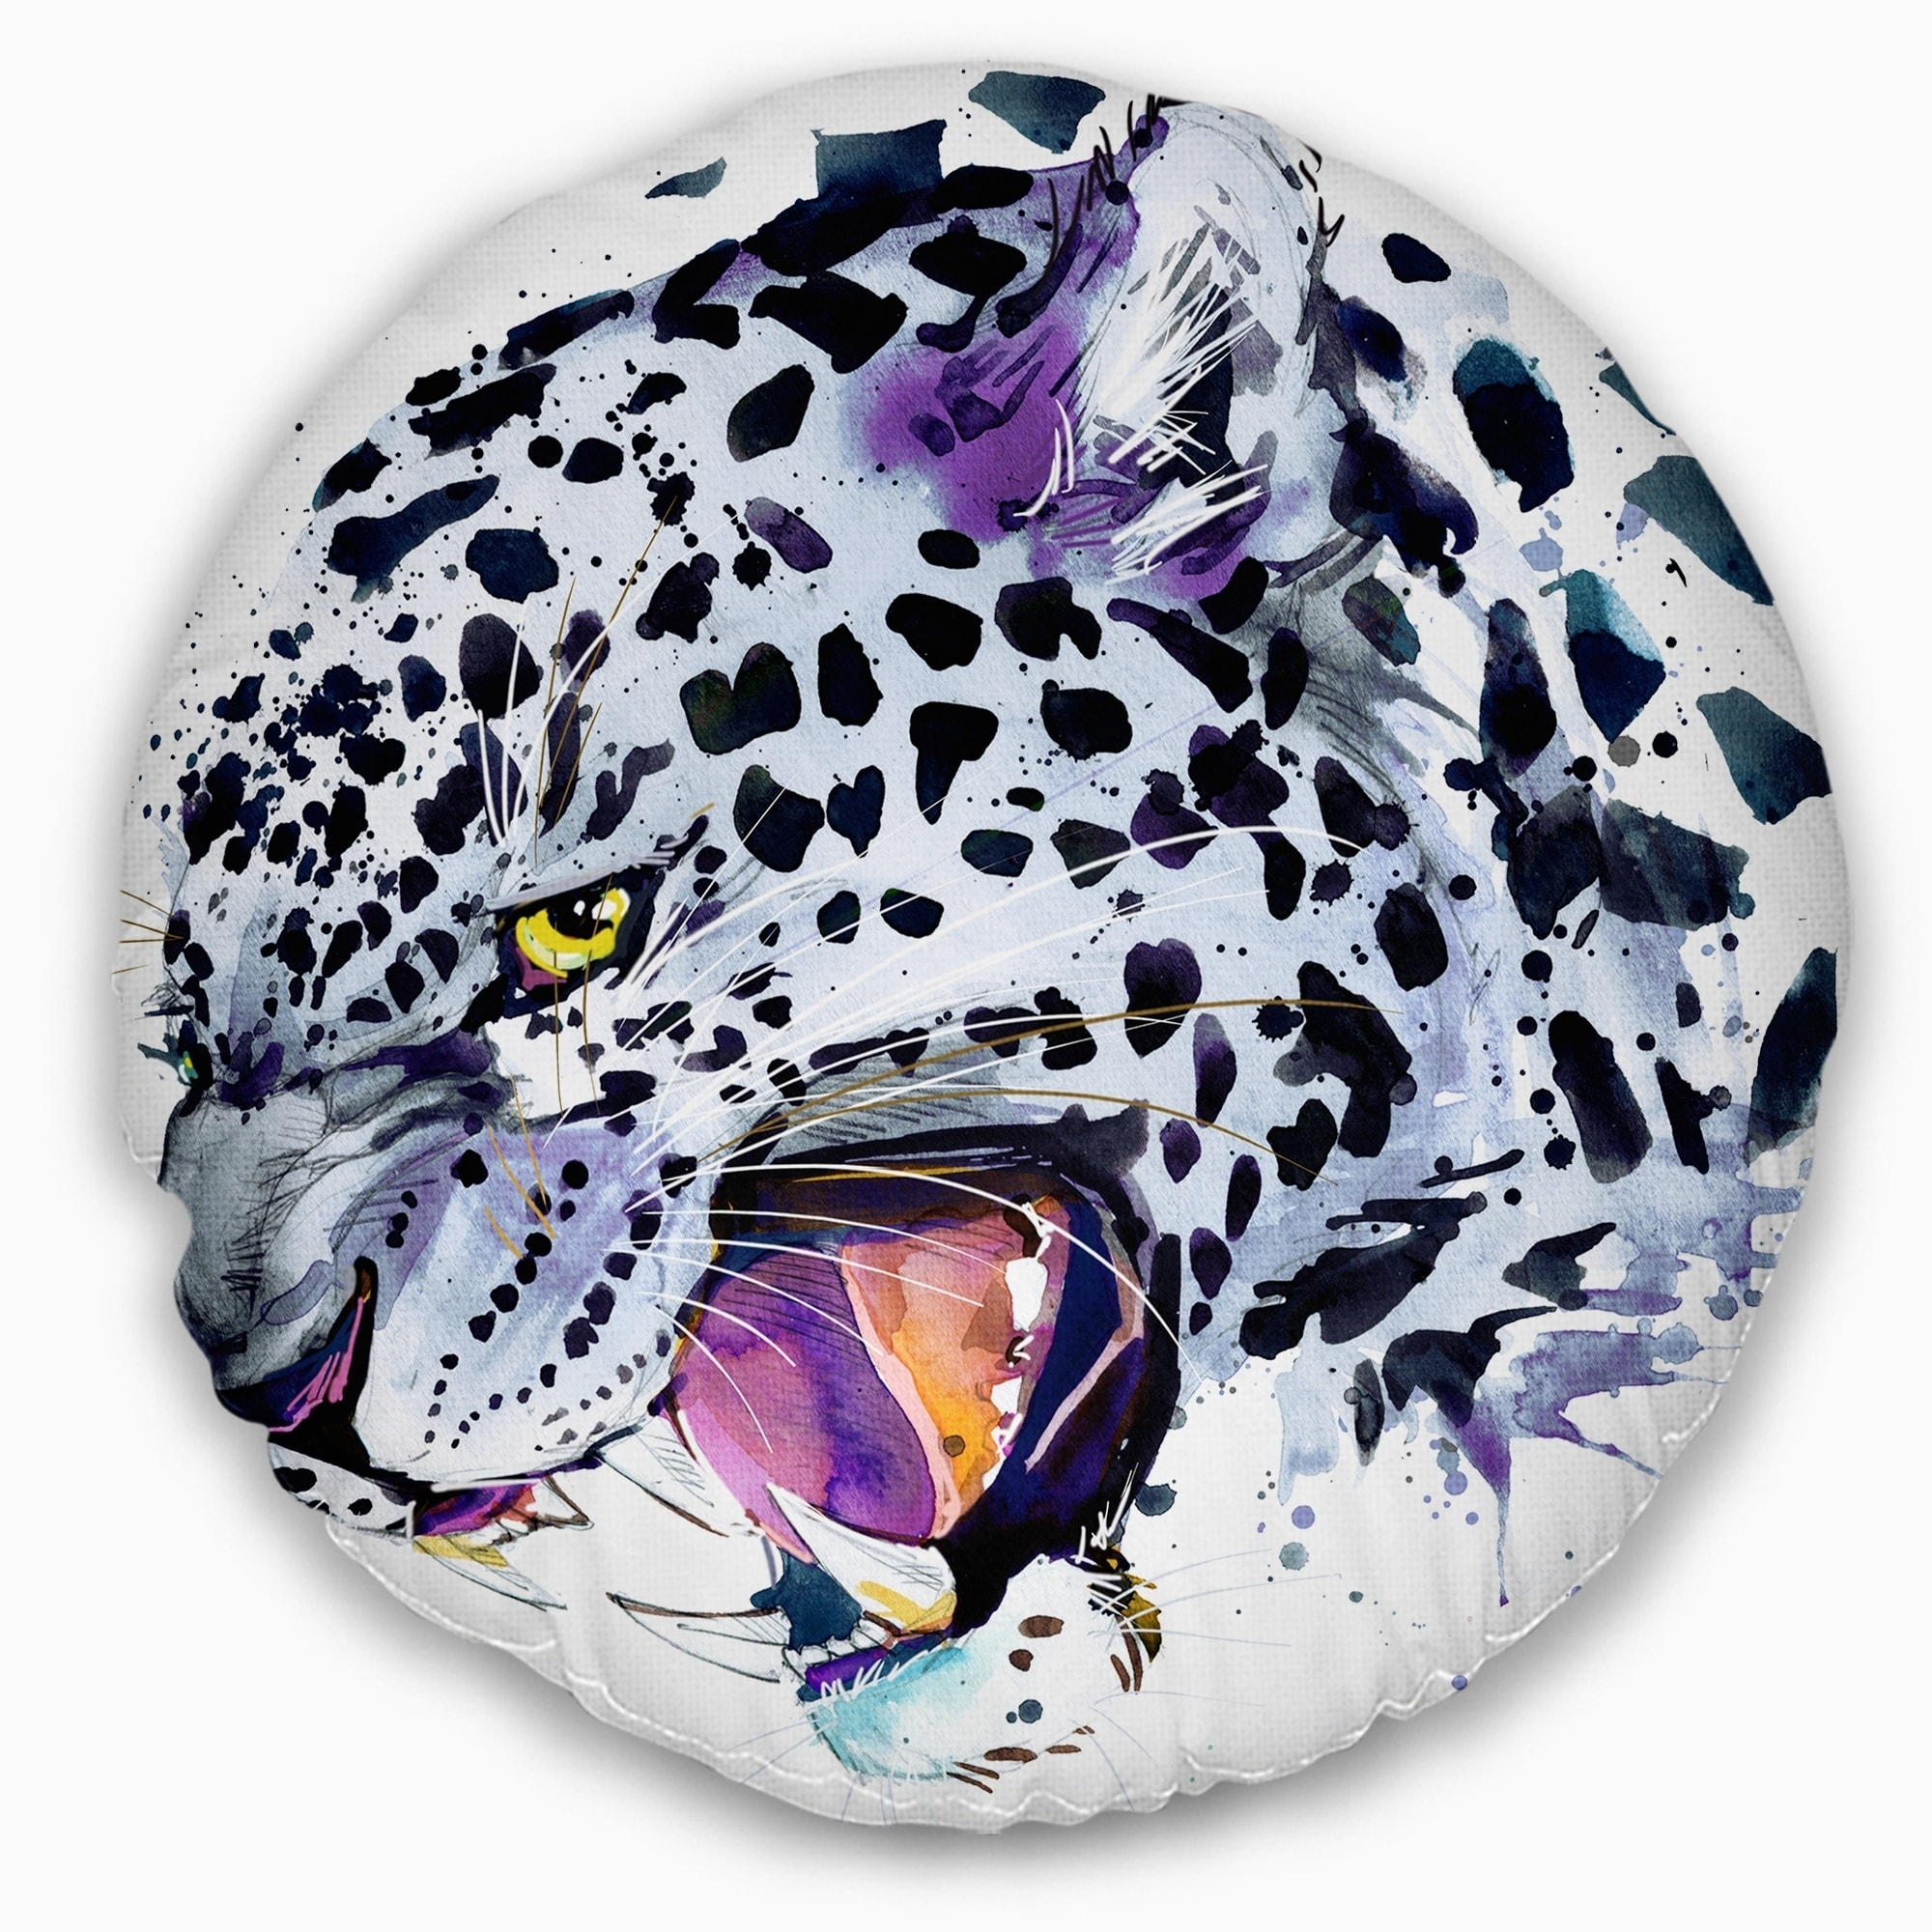 Sofa Throw Pillow 16 in x 16 in in Insert Printed On Both Side Designart CU13144-16-16 Ferocious Snow Leopard Face Animal Cushion Cover for Living Room